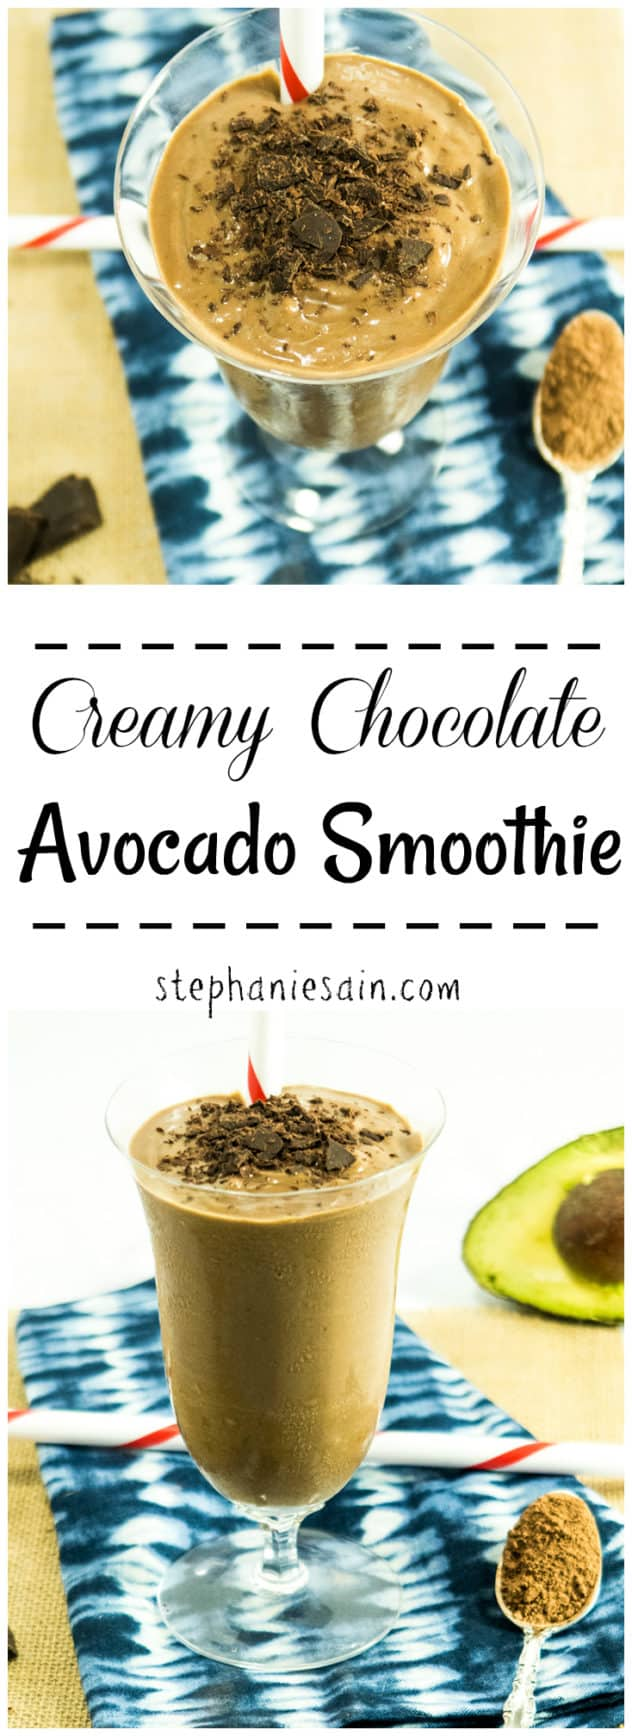 This Creamy Chocolate Avocado Smoothie requires only 4 ingredients for a thick, ultra creamy delicious smoothie. Great for breakfast, post workout snack, or even dessert. Vegan & Gluten Free.